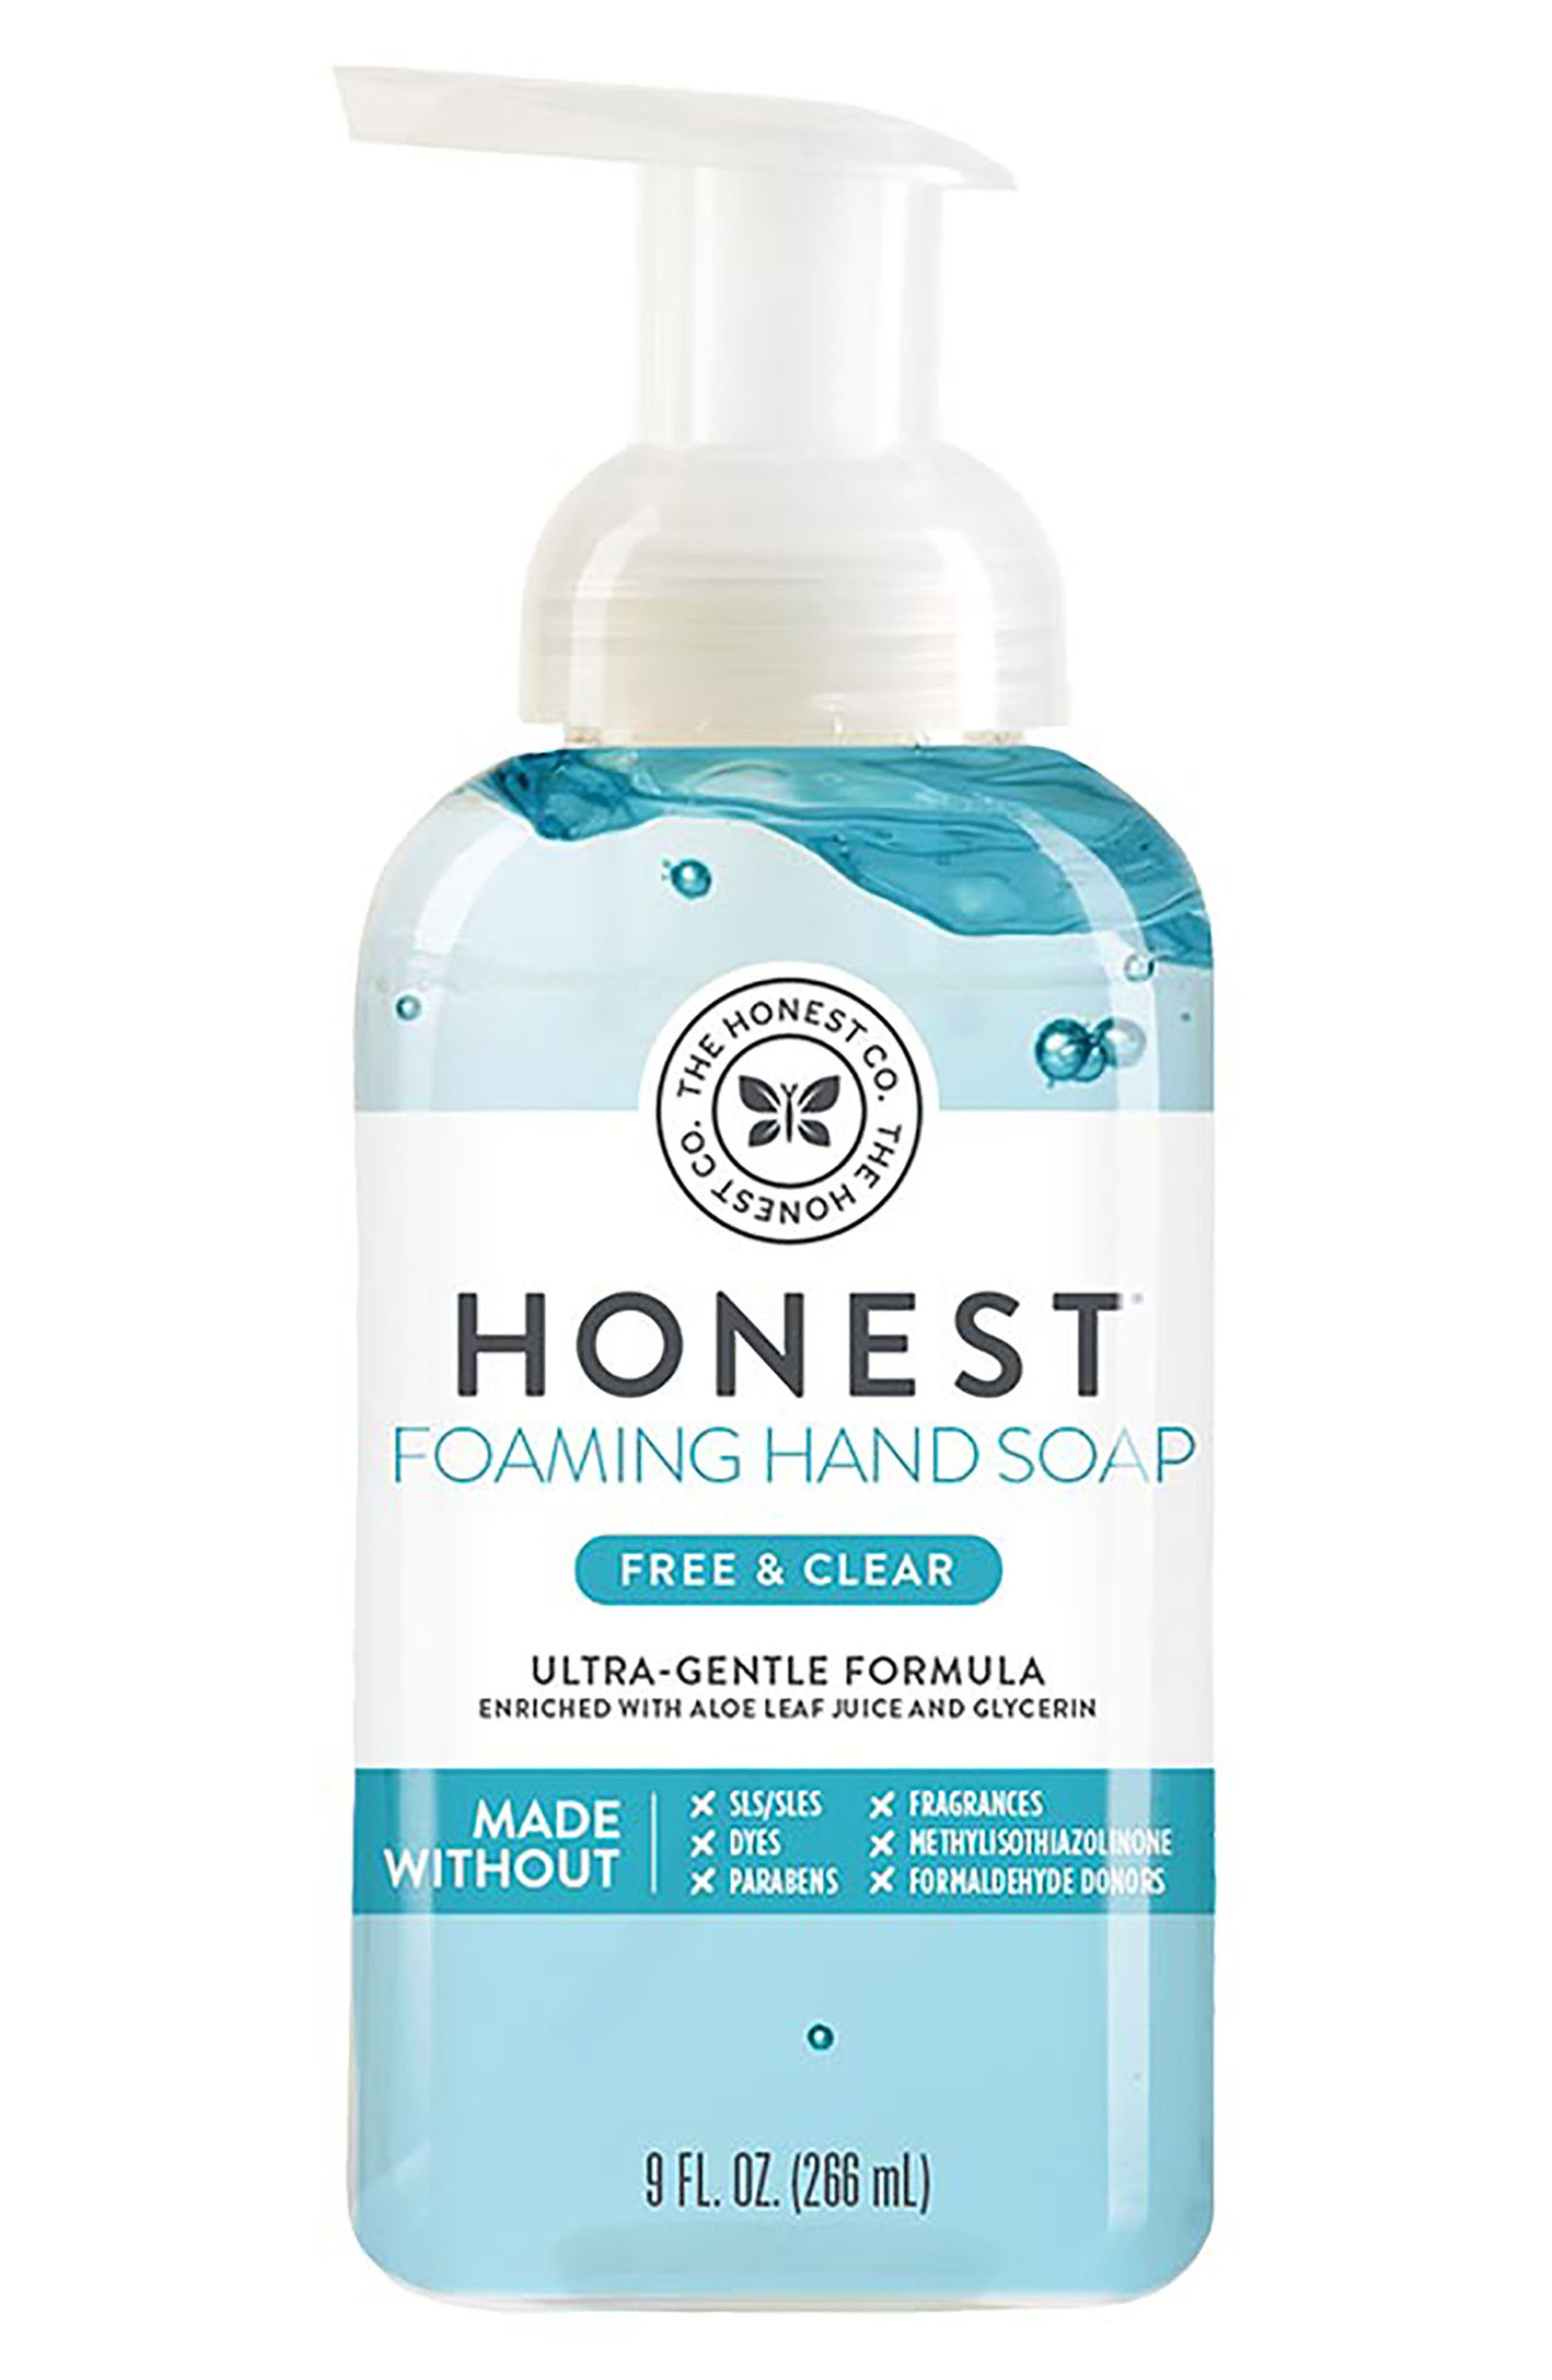 Free & Clear Foaming Hand Soap,                         Main,                         color, FREE/ CLEAR